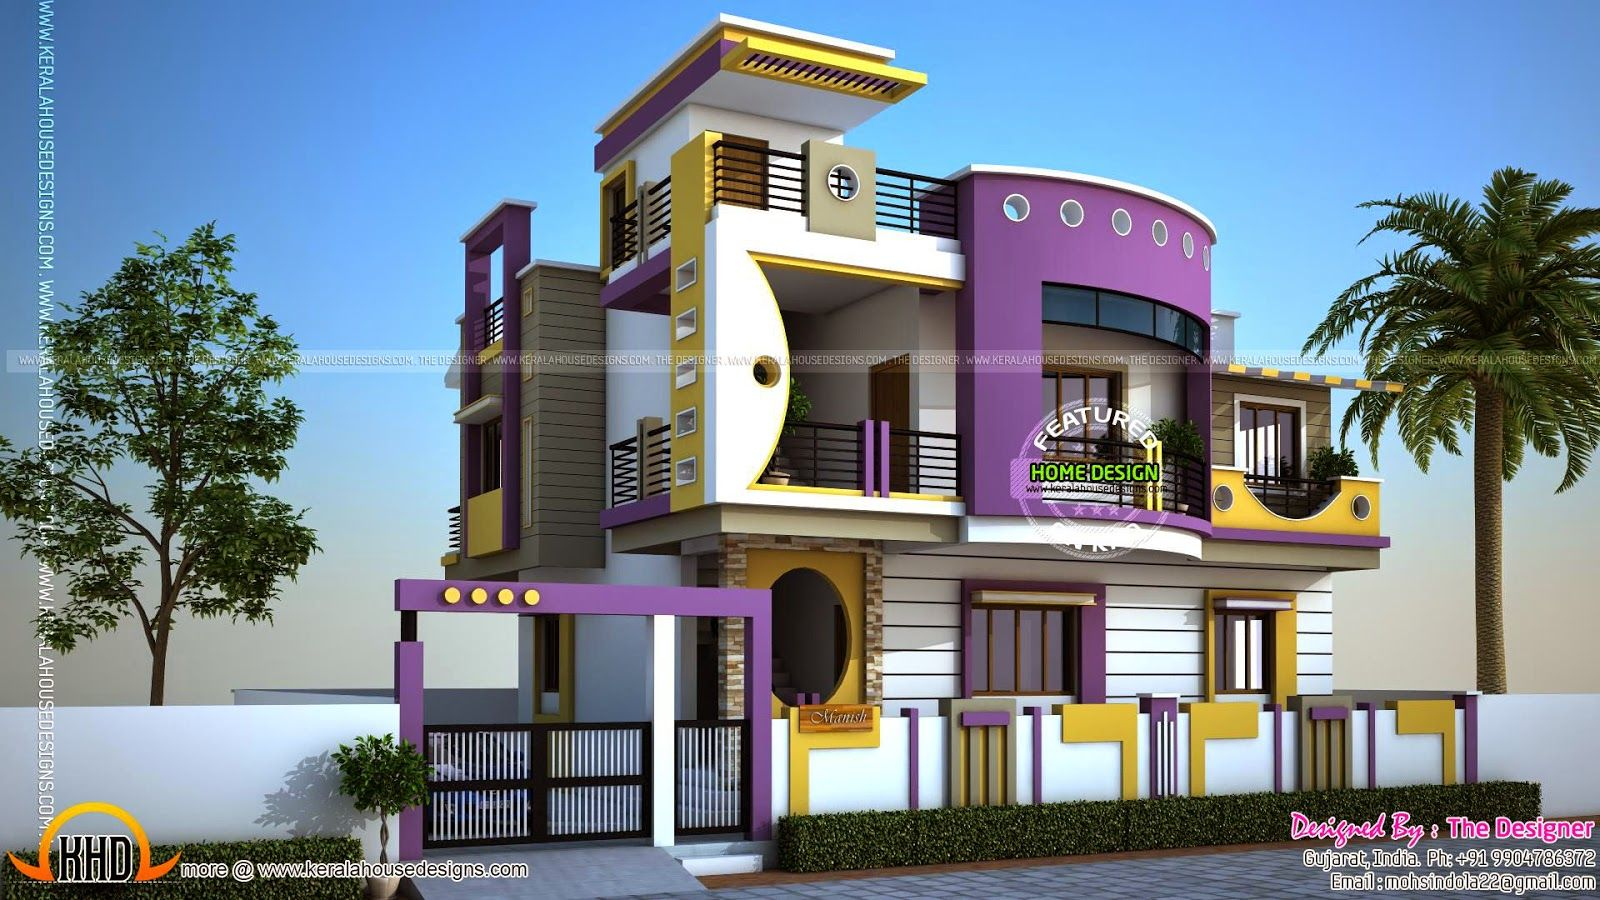 modern house exterior designs in india - Home Design In India